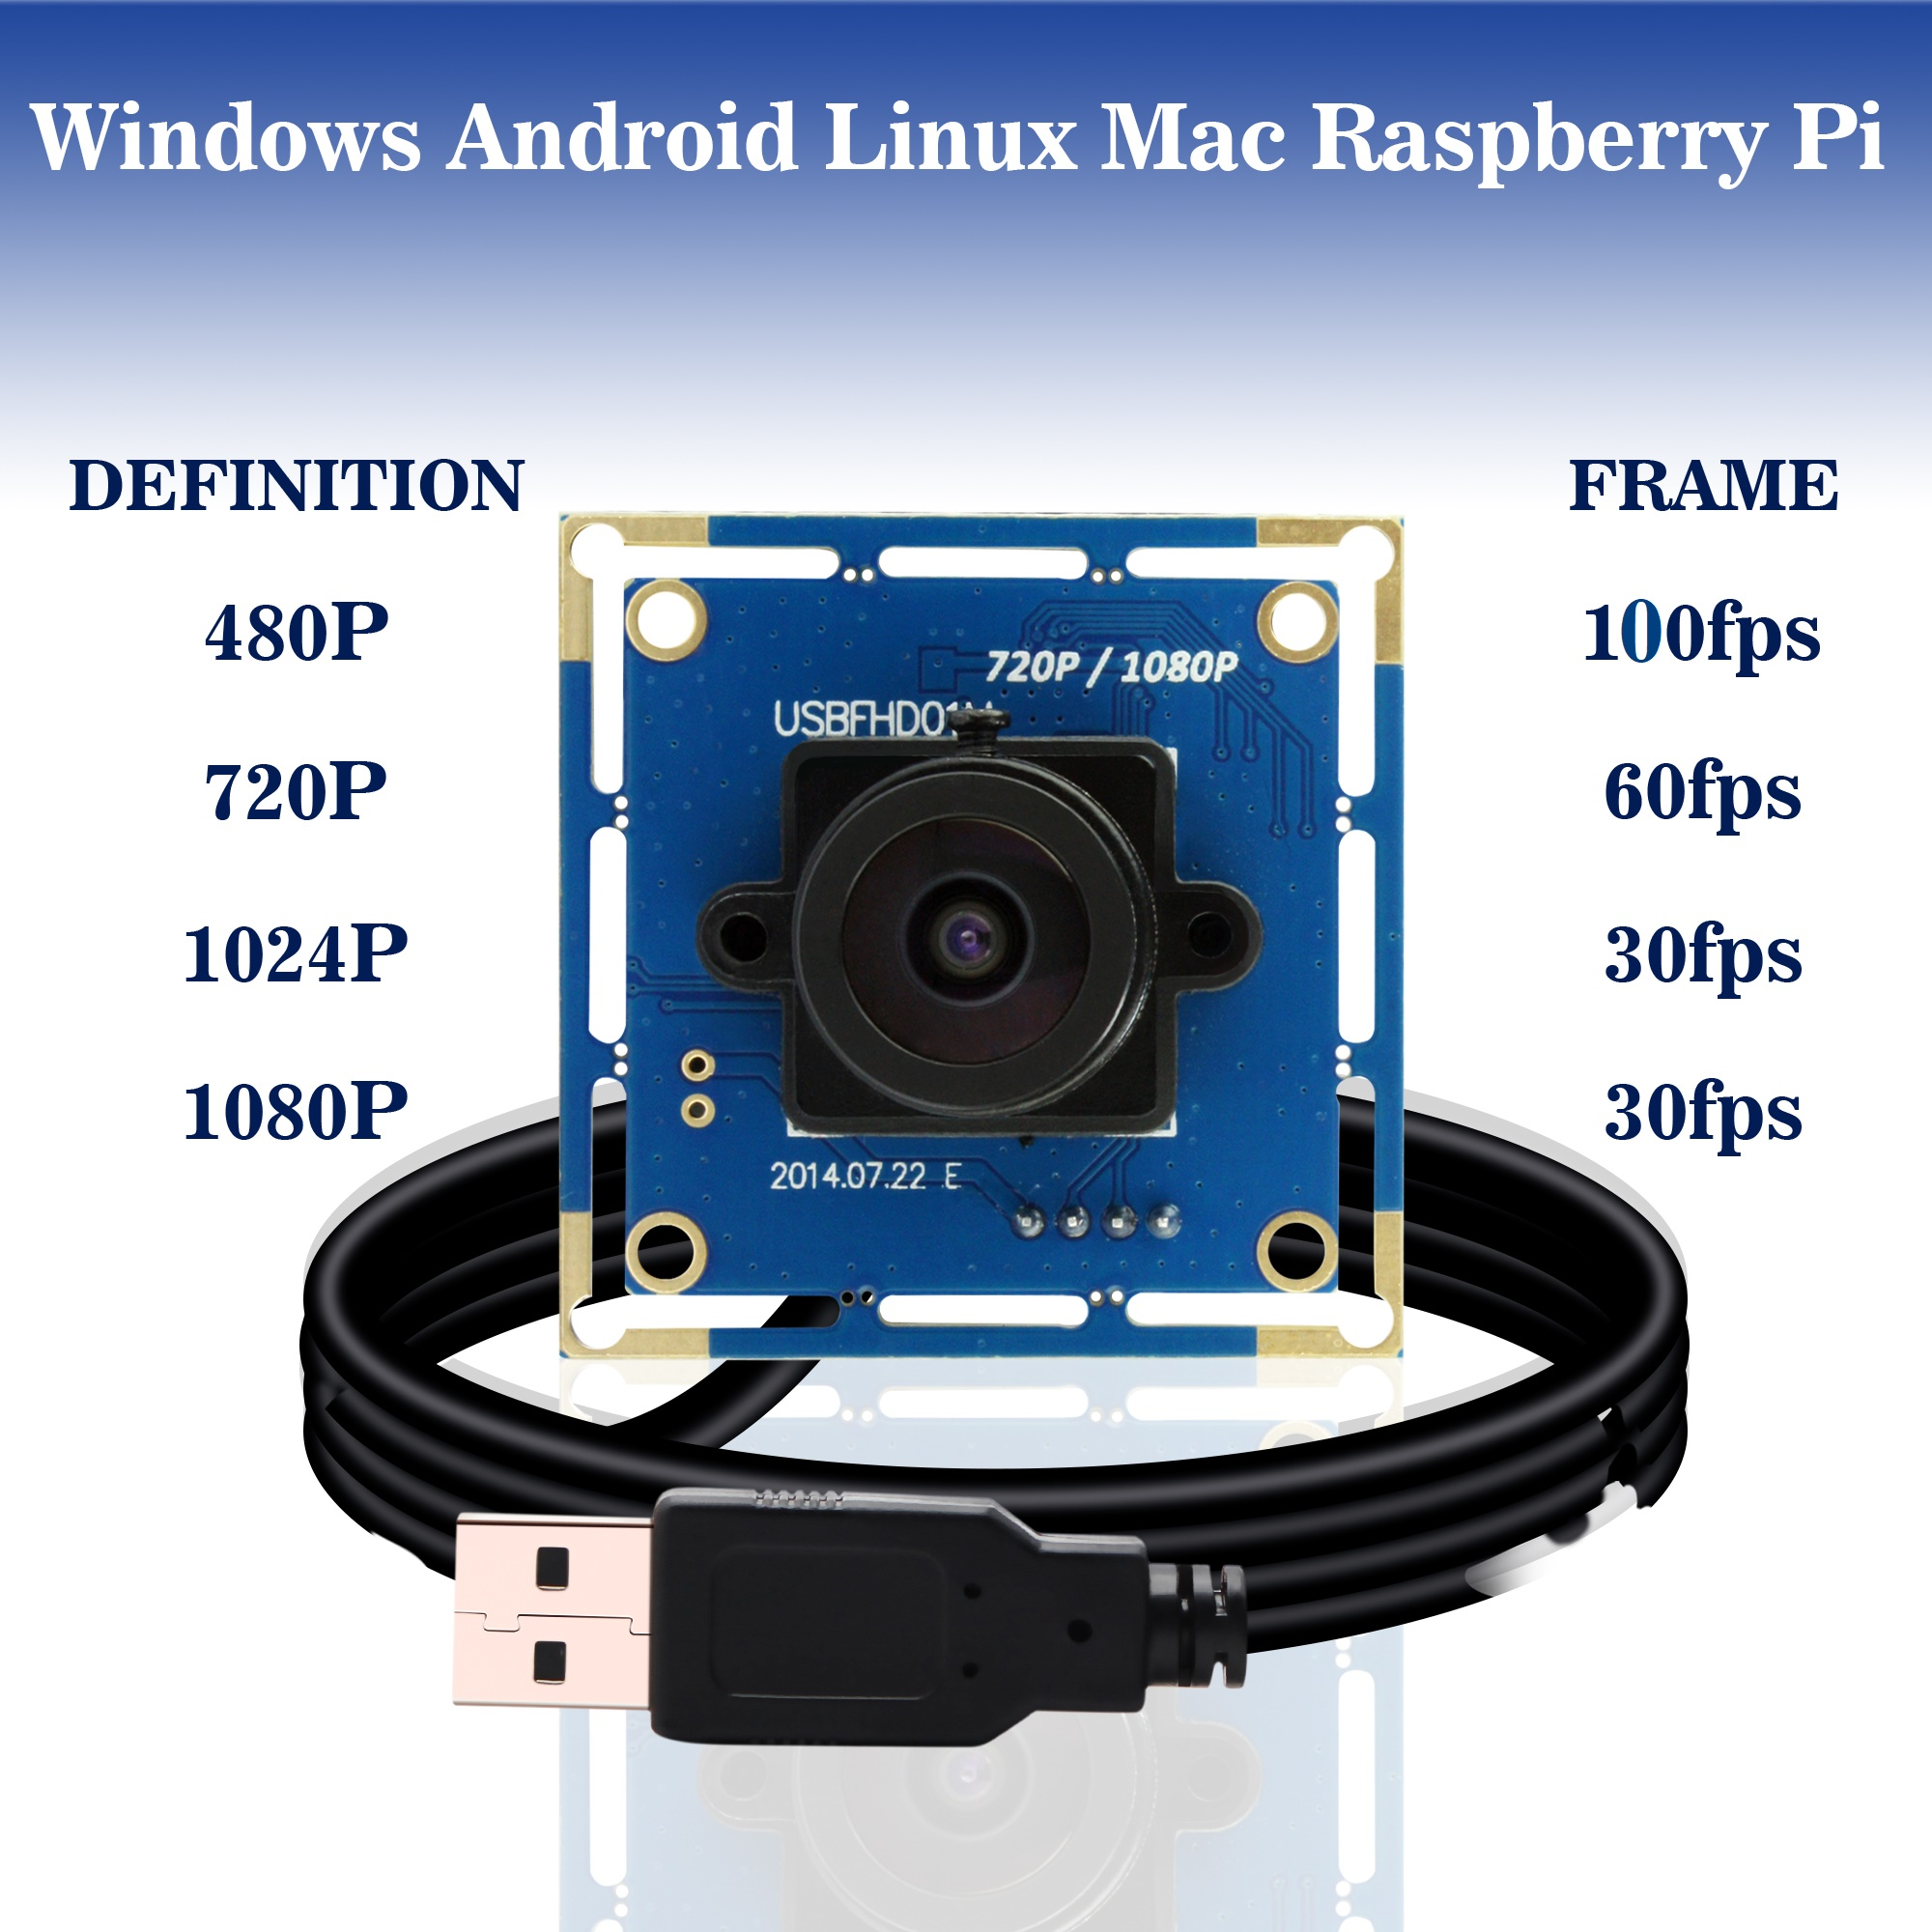 1080p Full Hd MJPEG 30fps / 60fps / 100fps Hög hastighet CMOS OV2710 vidvinkel Mini CCTV Android Linux UVC Webcam Usb Camera Module